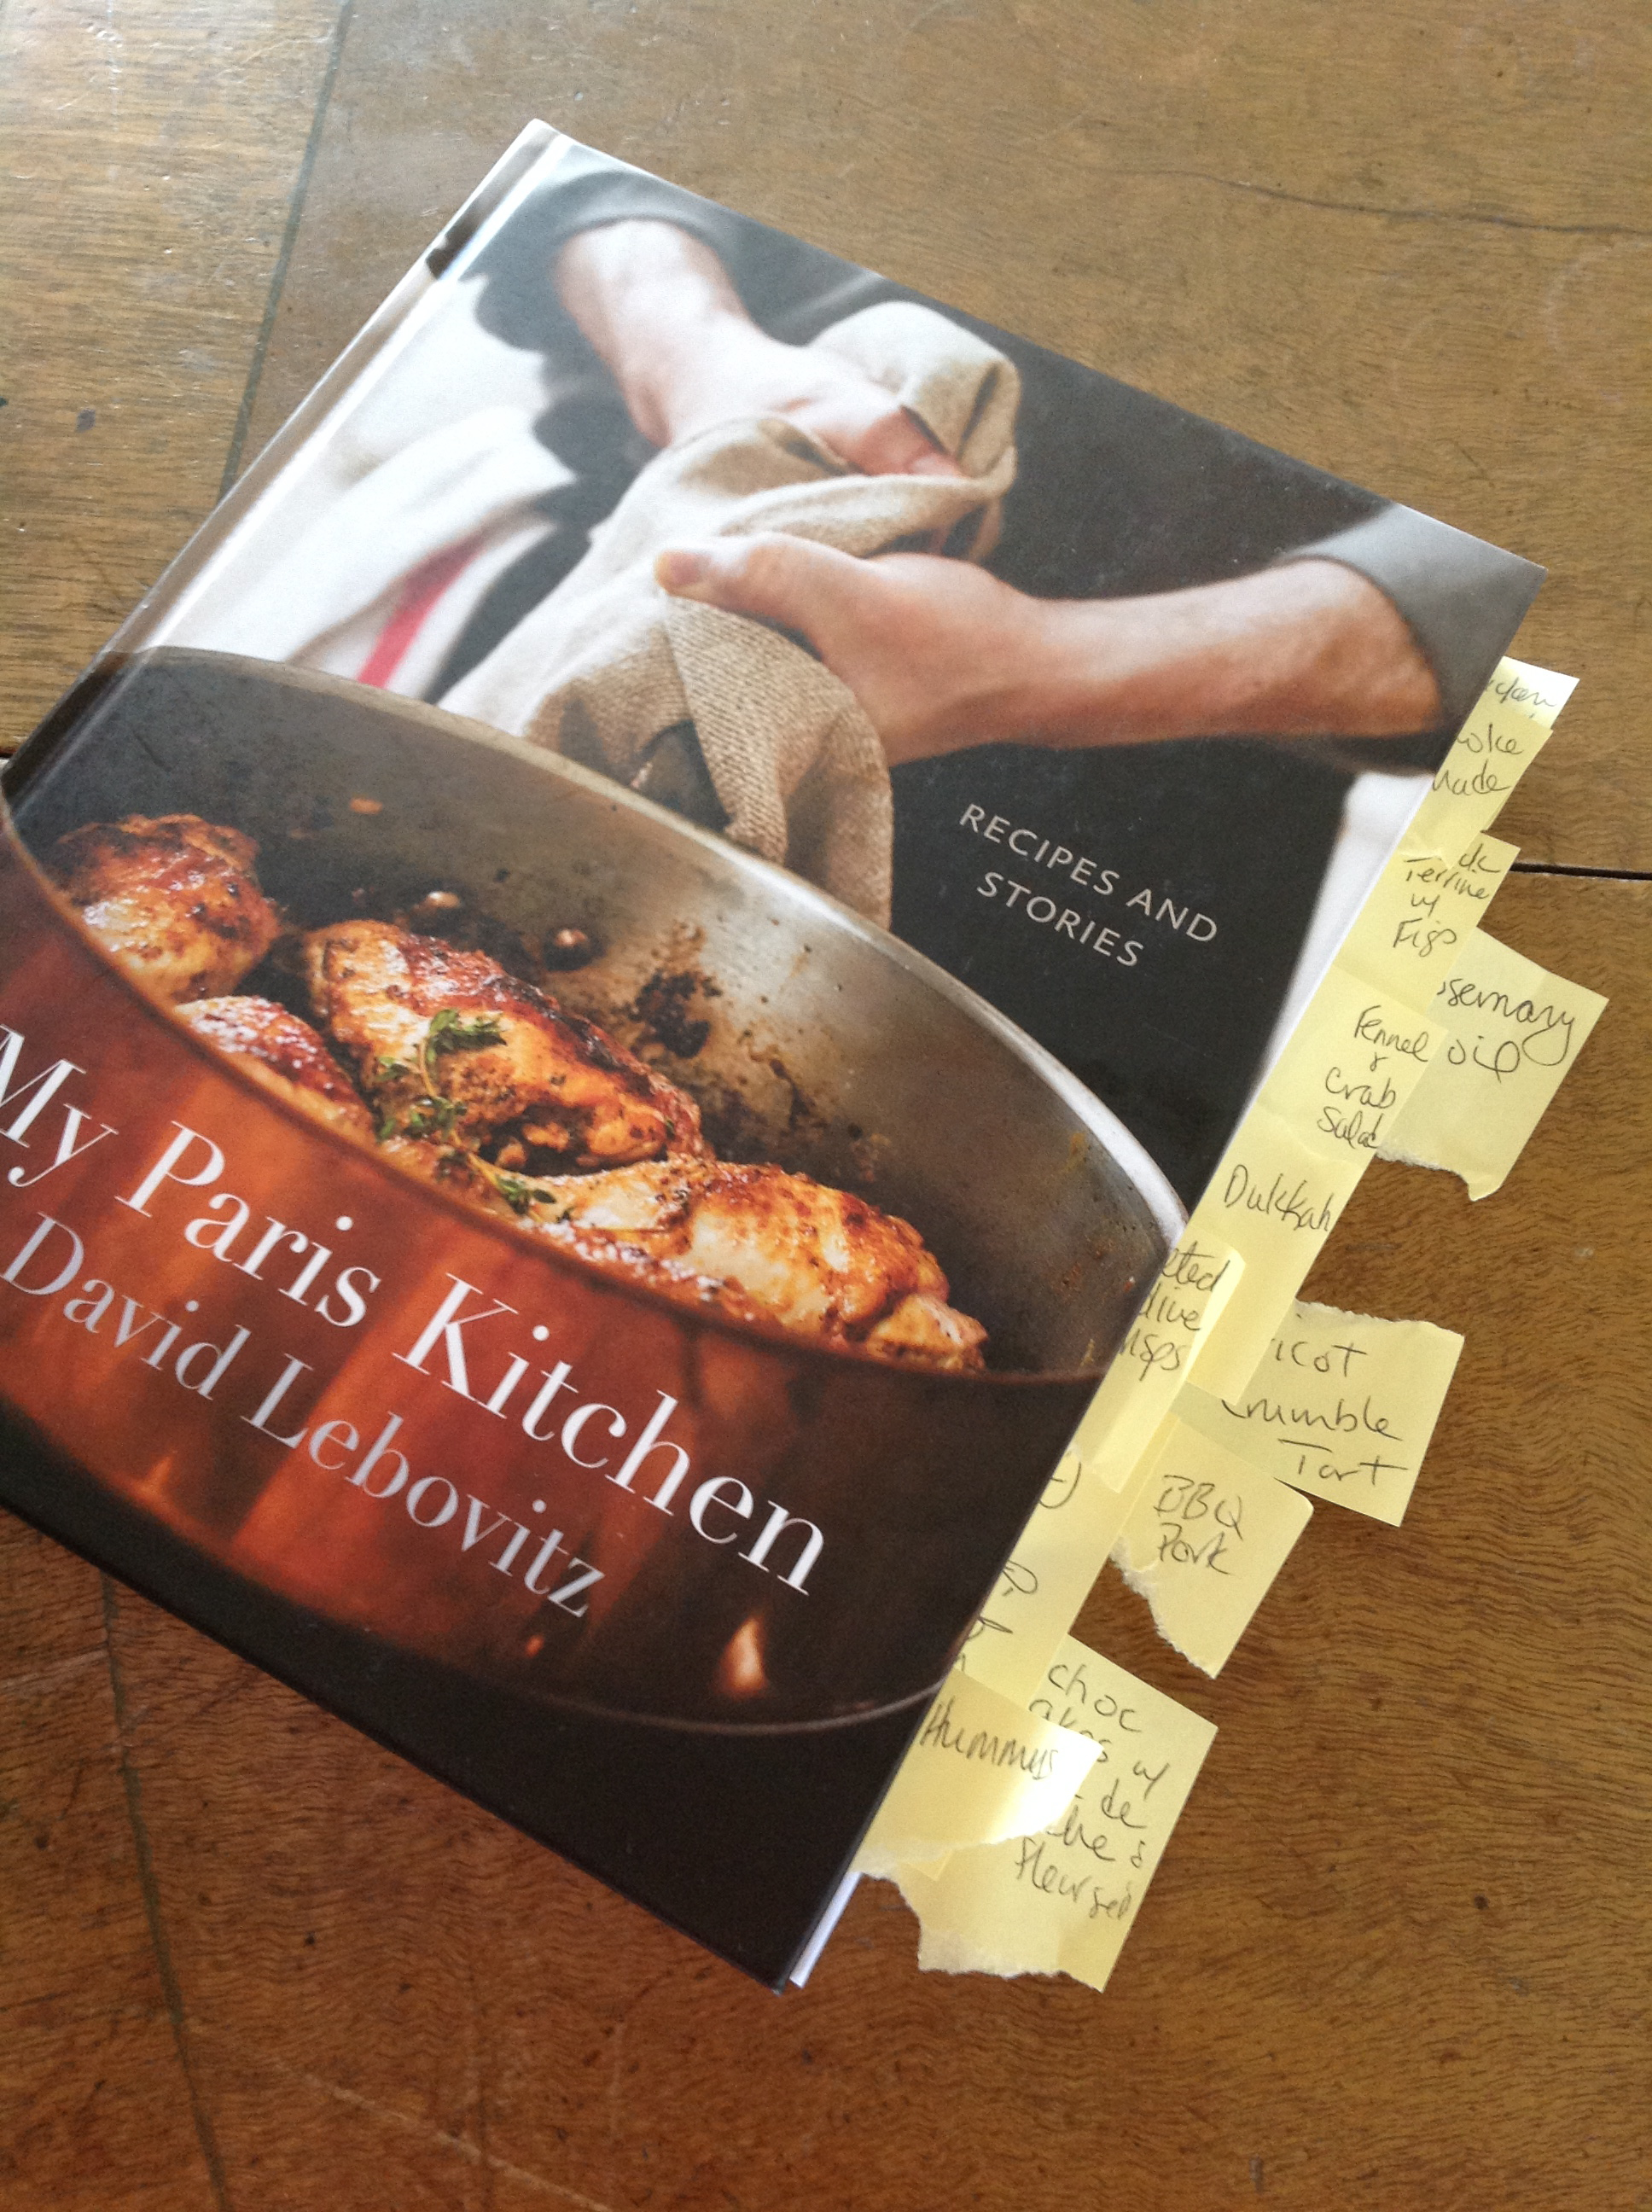 My Paris Kitchen: Lunch with David Lebovitz — Karen Tripson